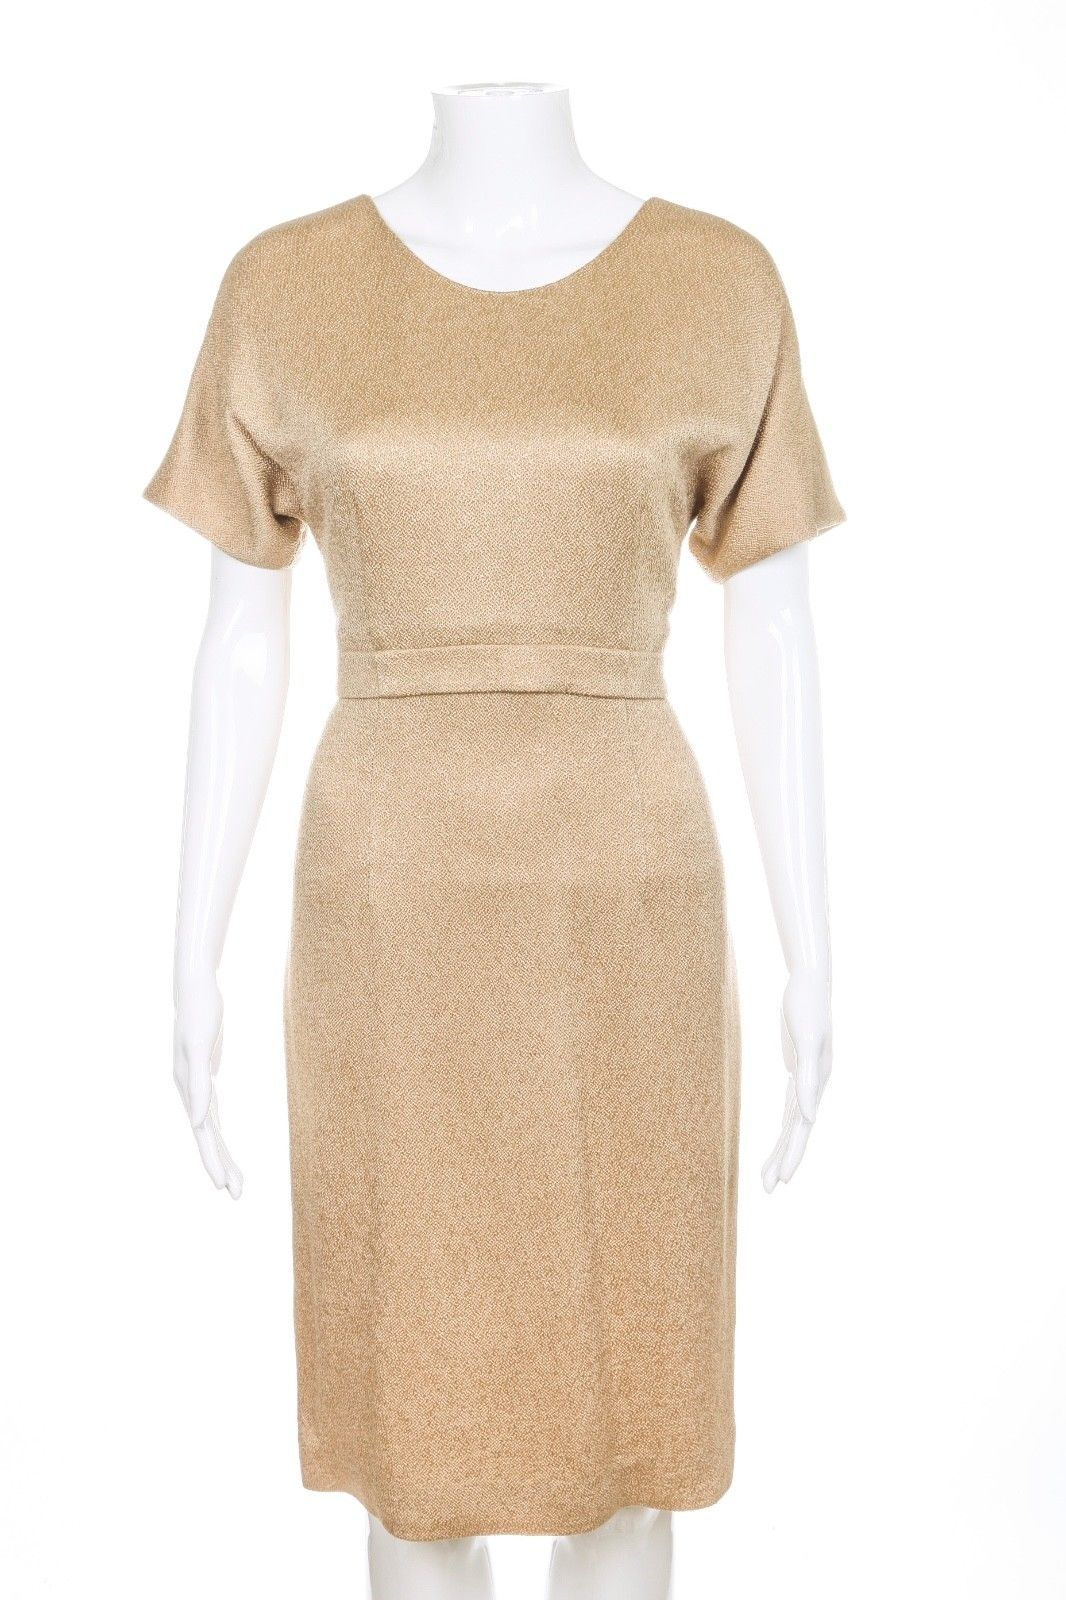 LYN DEVON Gold Textured Cocktail Dress Size 6